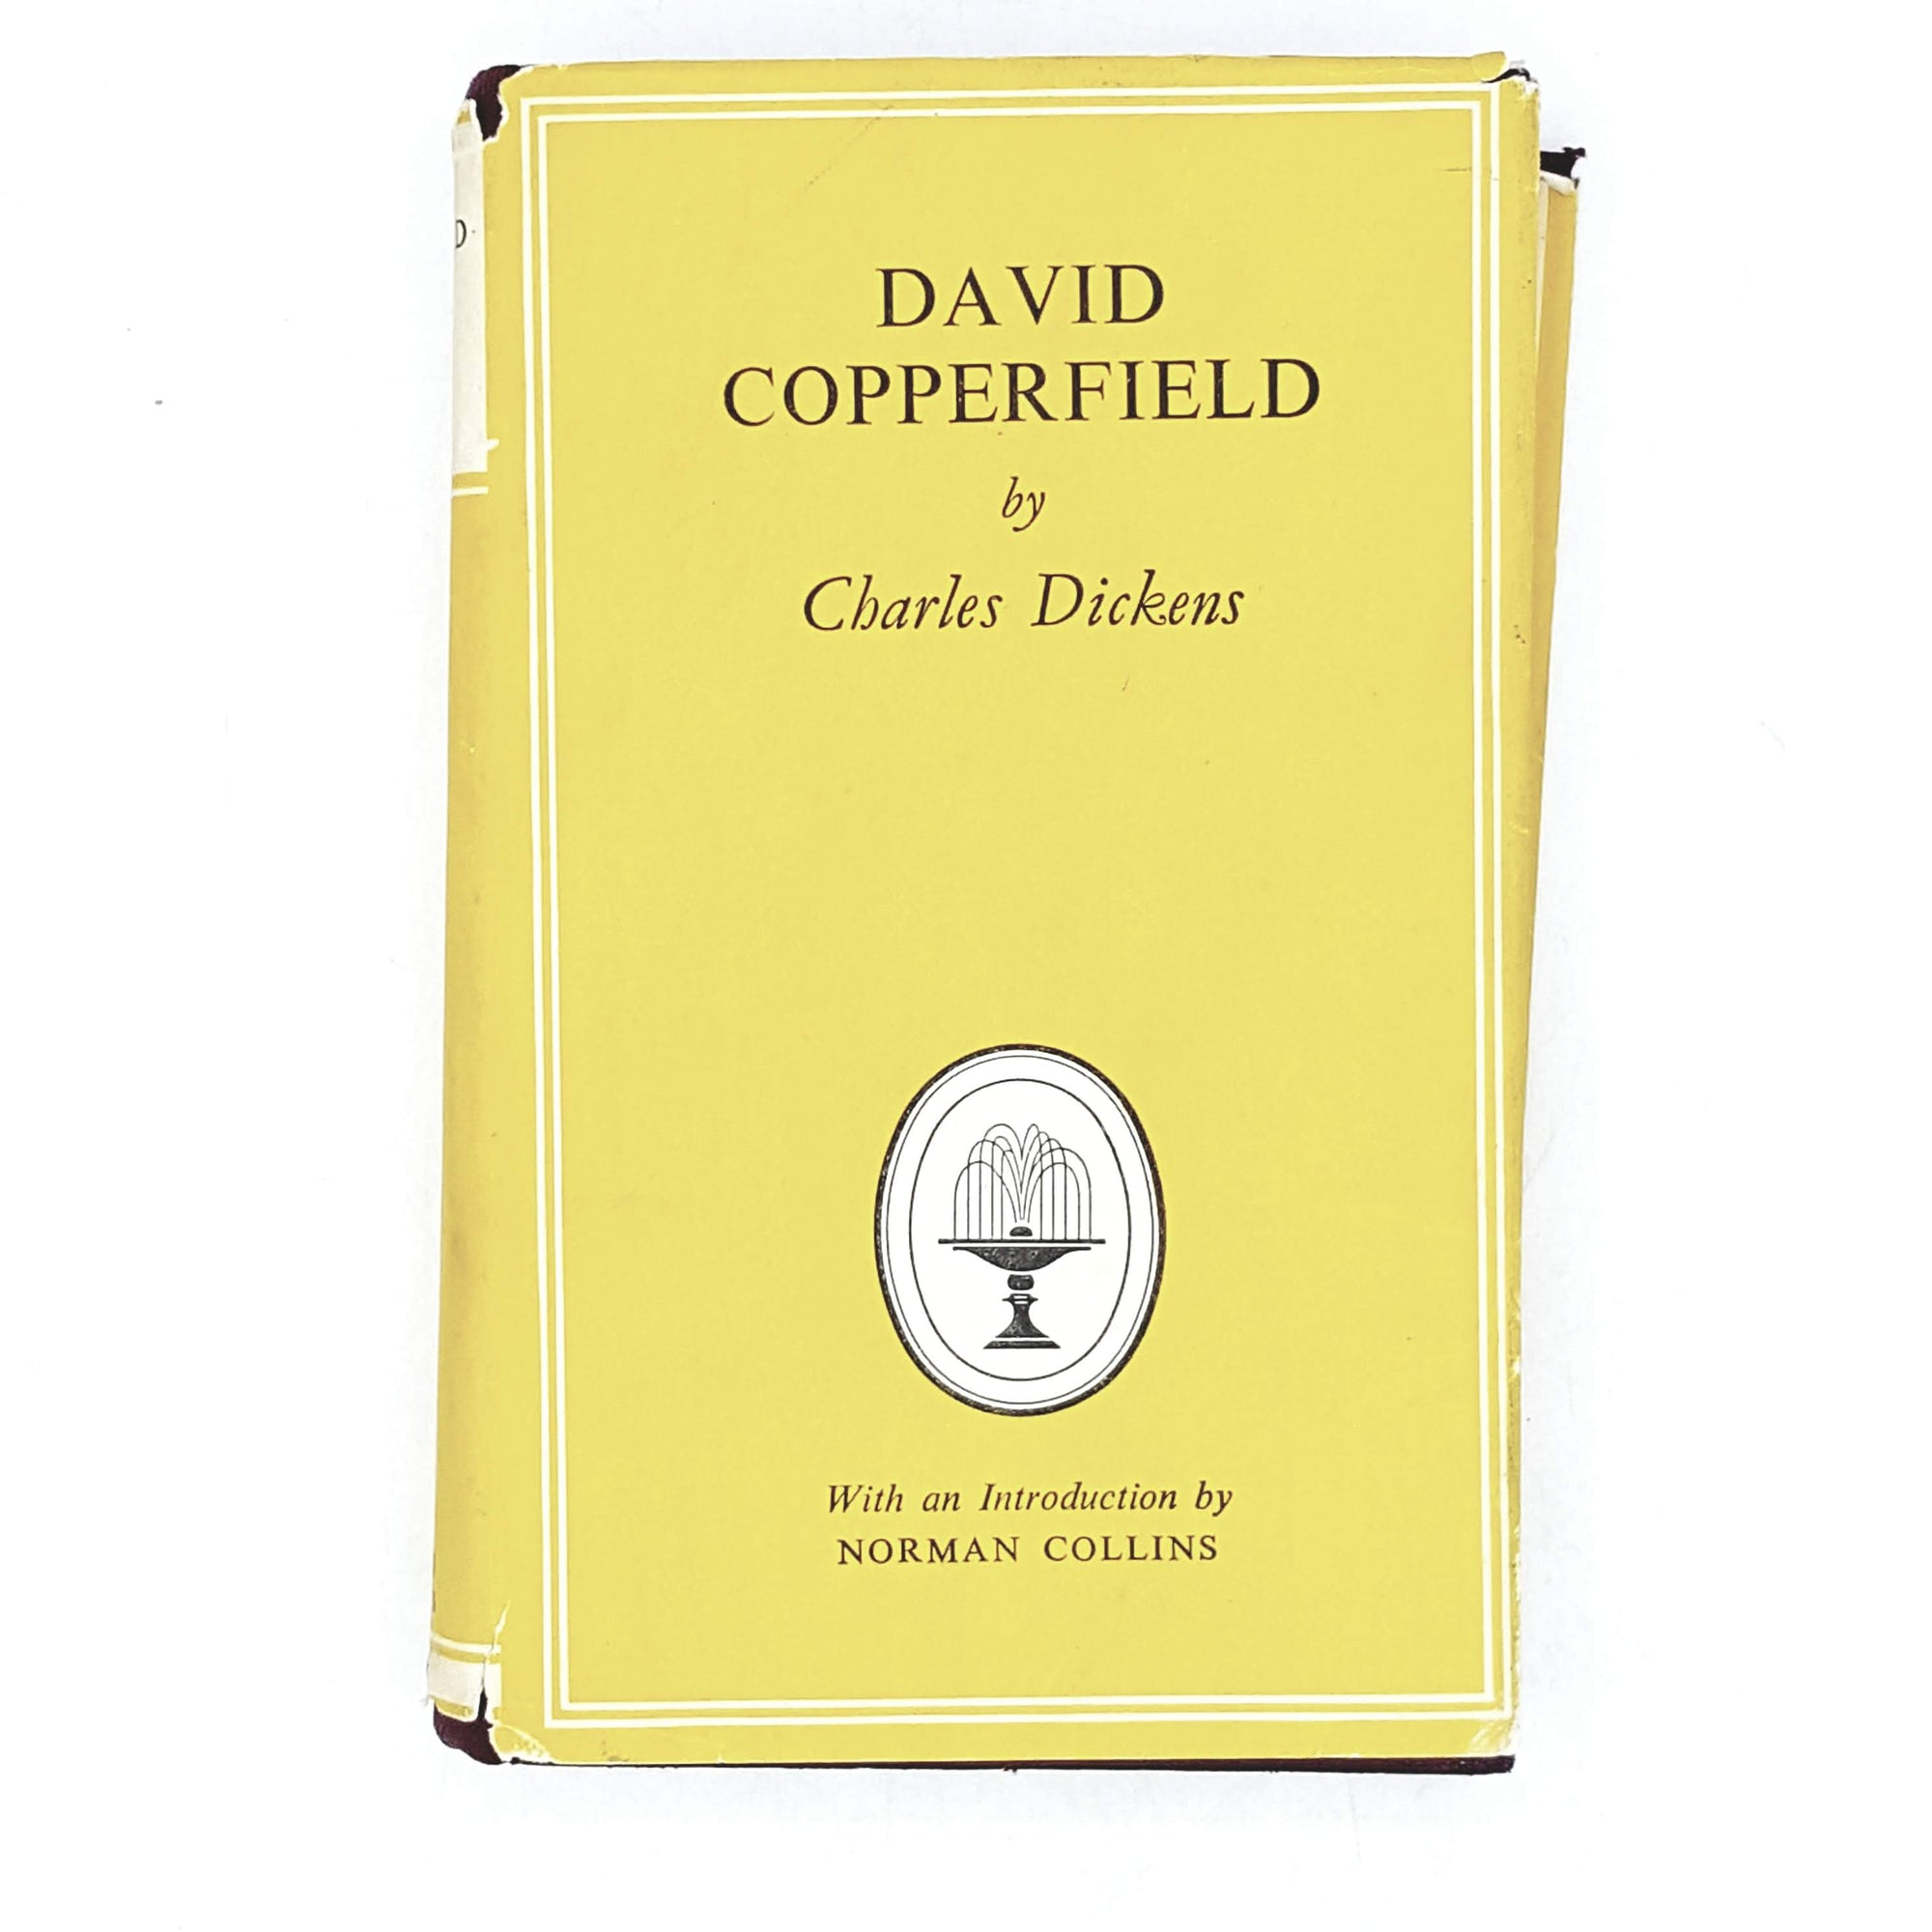 Charles Dickens's David Copperfield 1952